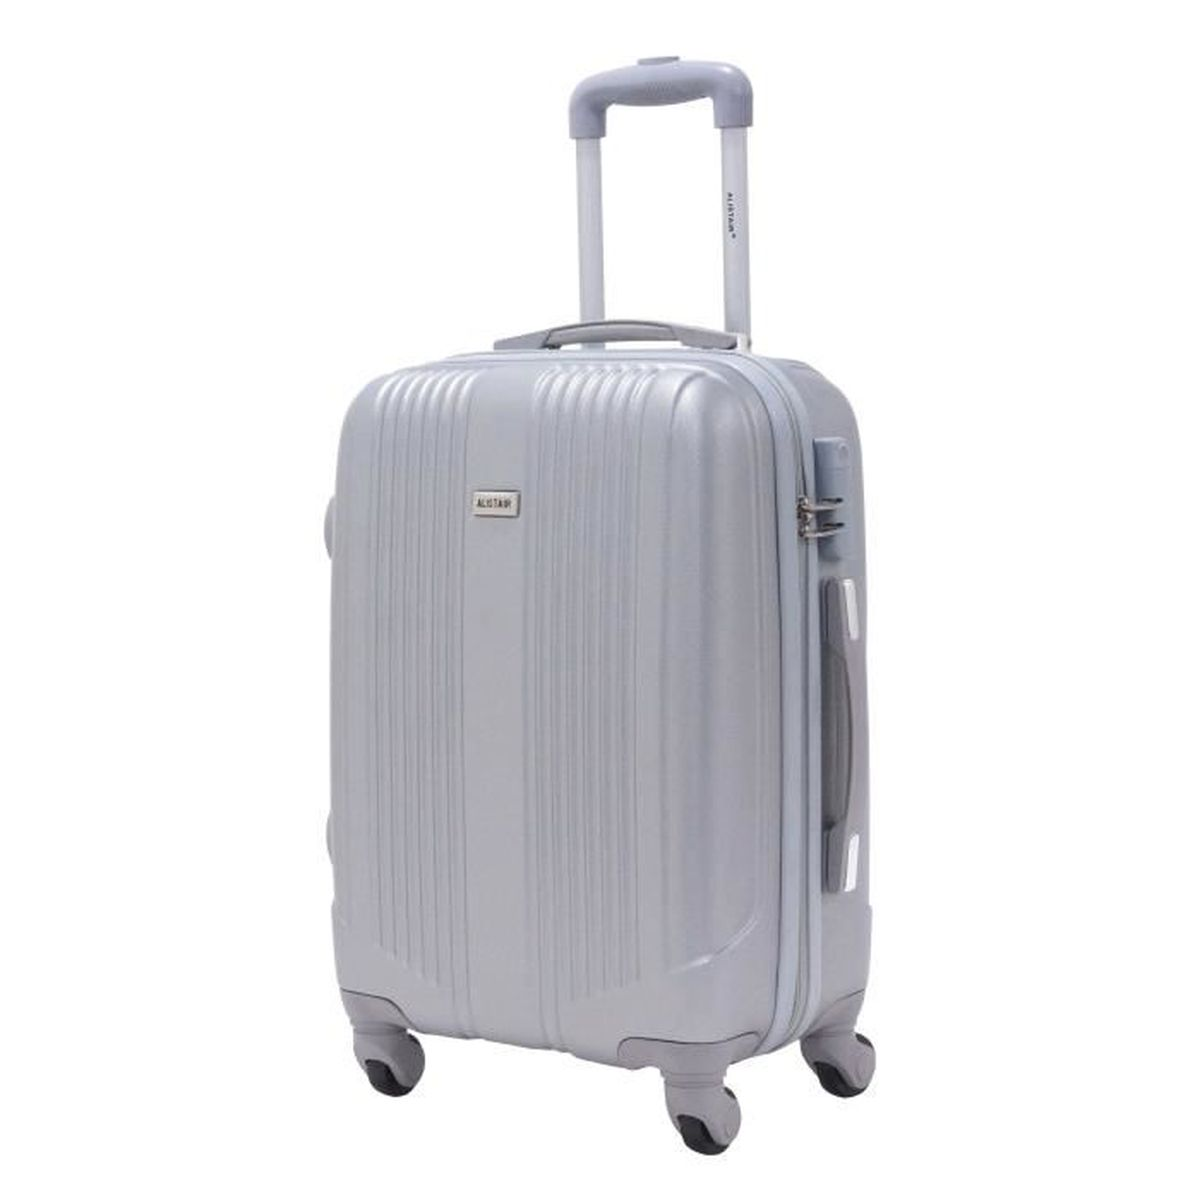 valise cabine taille 55cm alistair airo abs gris silver achat vente valise bagage. Black Bedroom Furniture Sets. Home Design Ideas